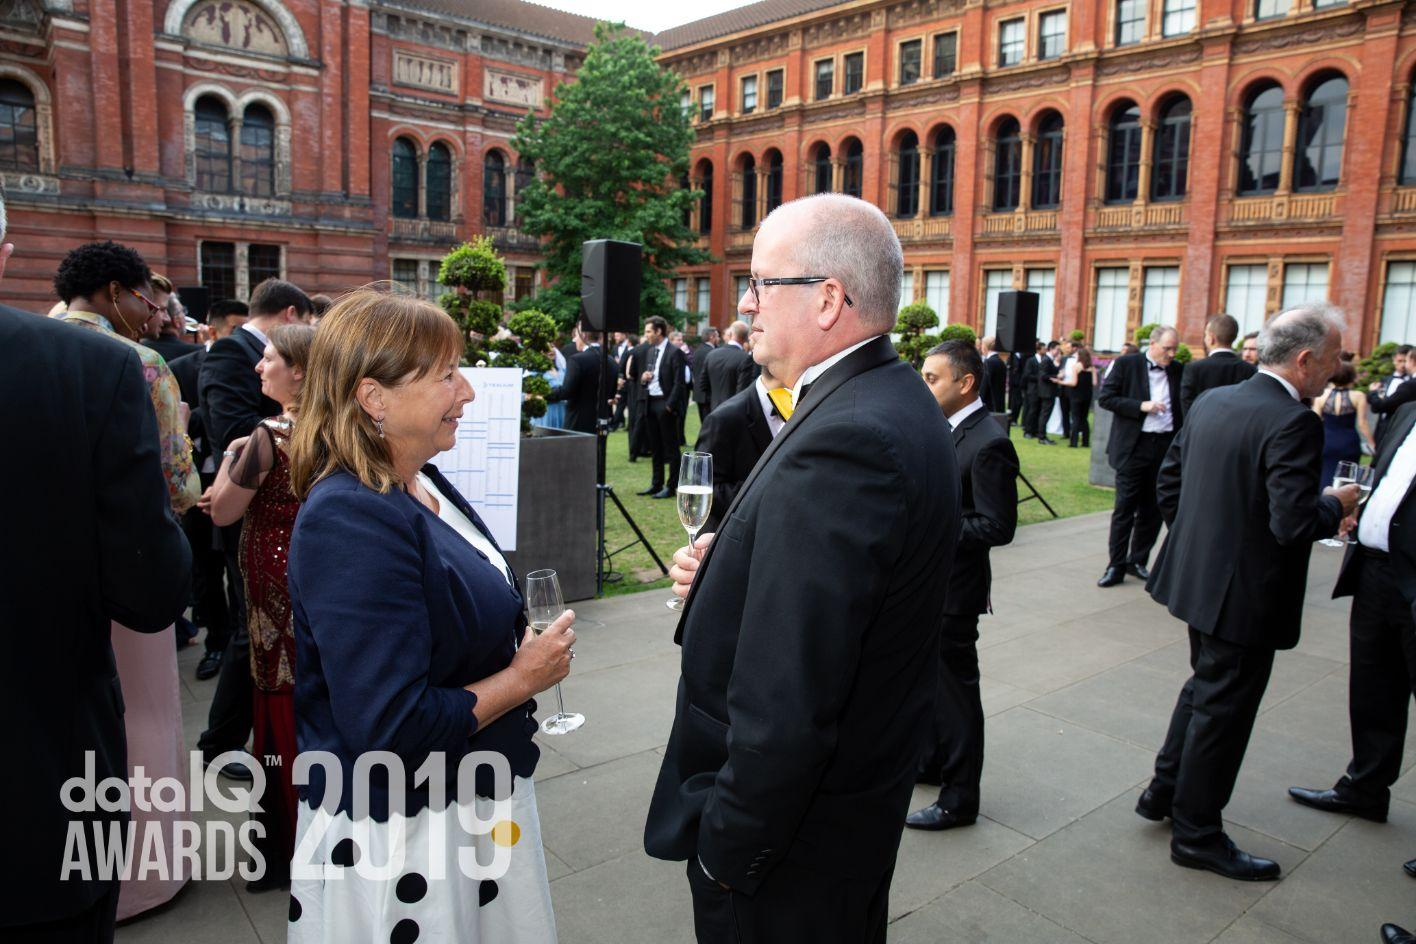 Awards 2019 Image 112